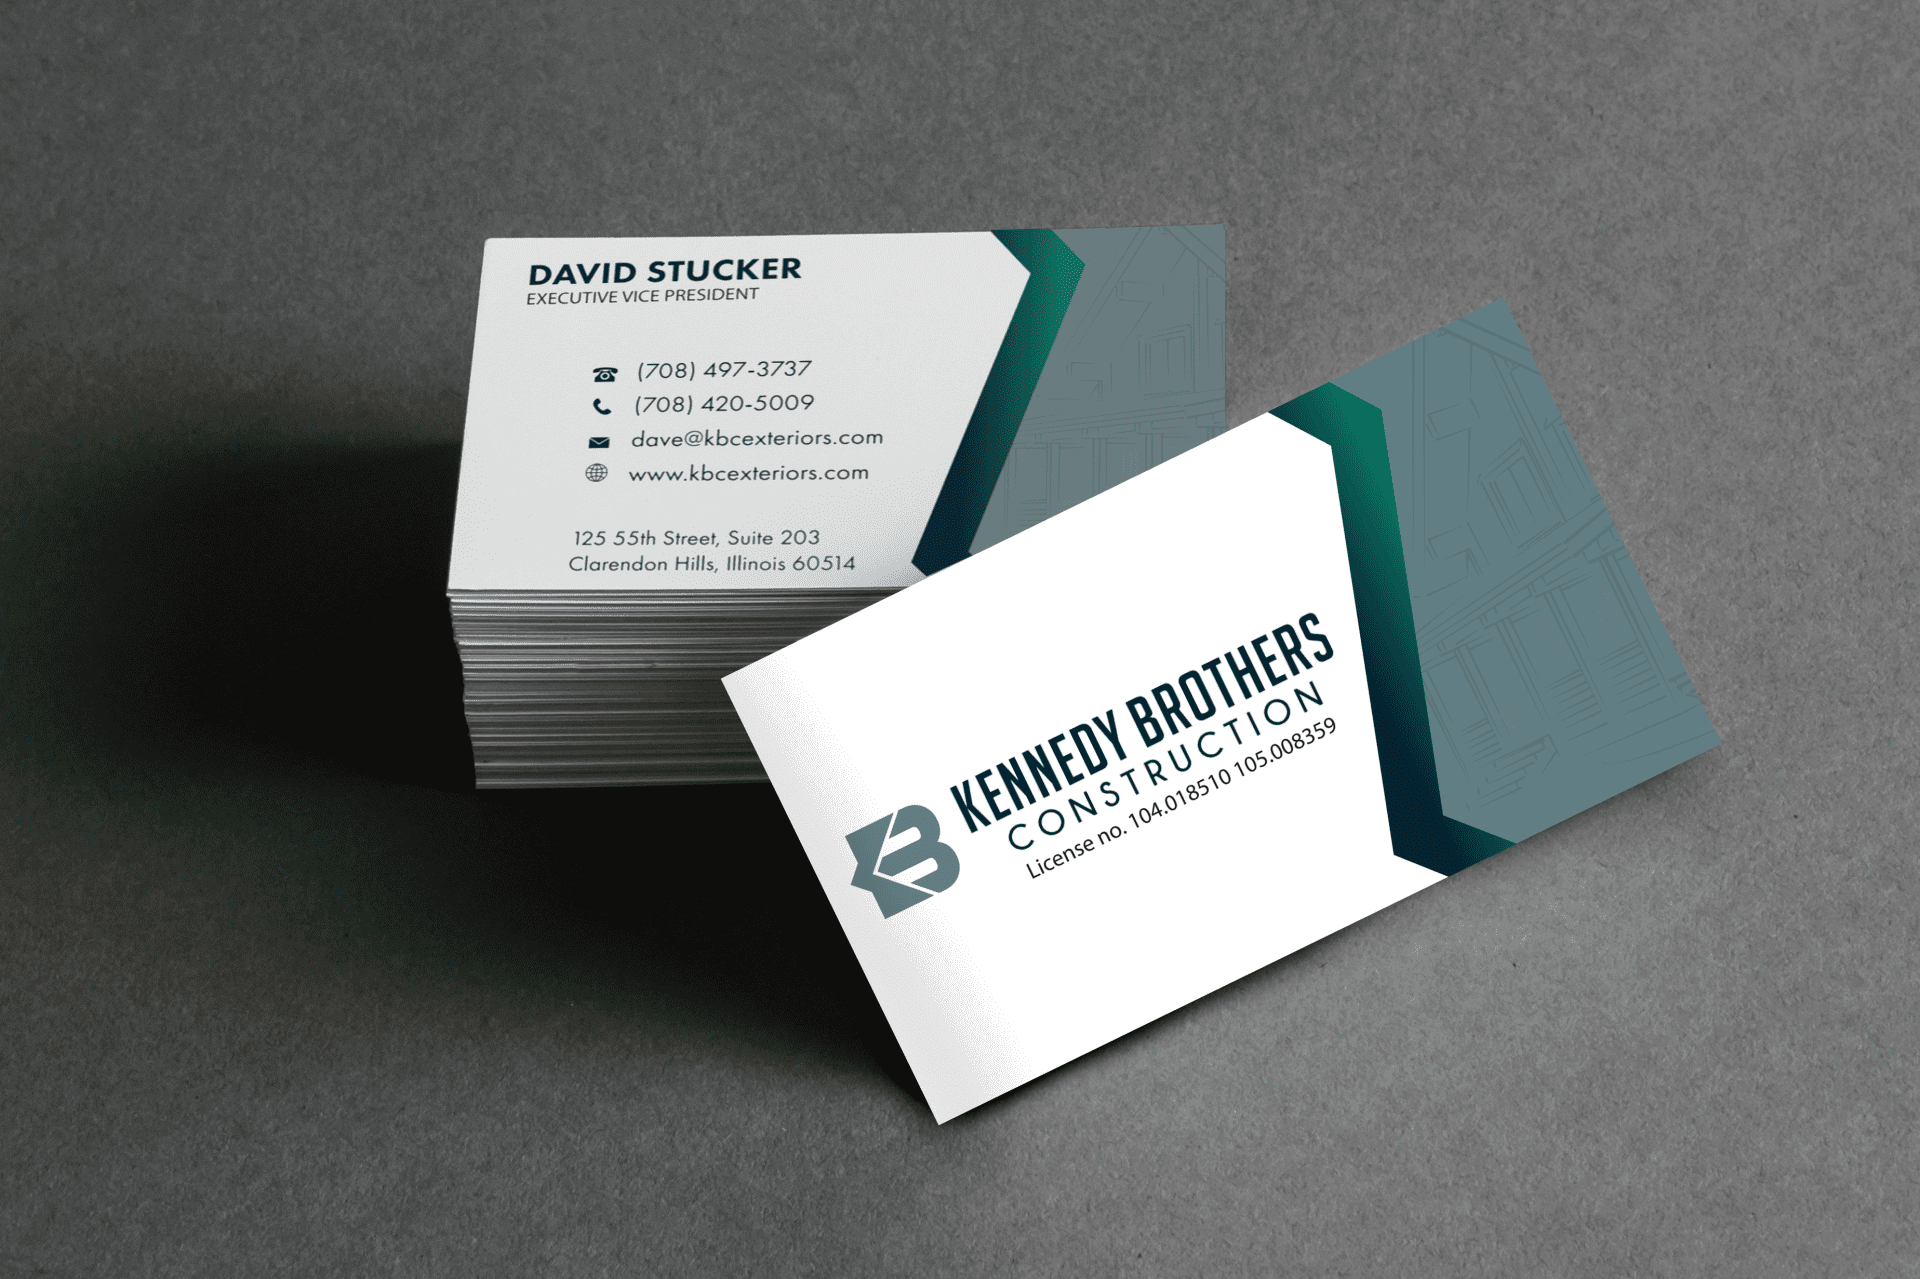 cards for company kbc construction